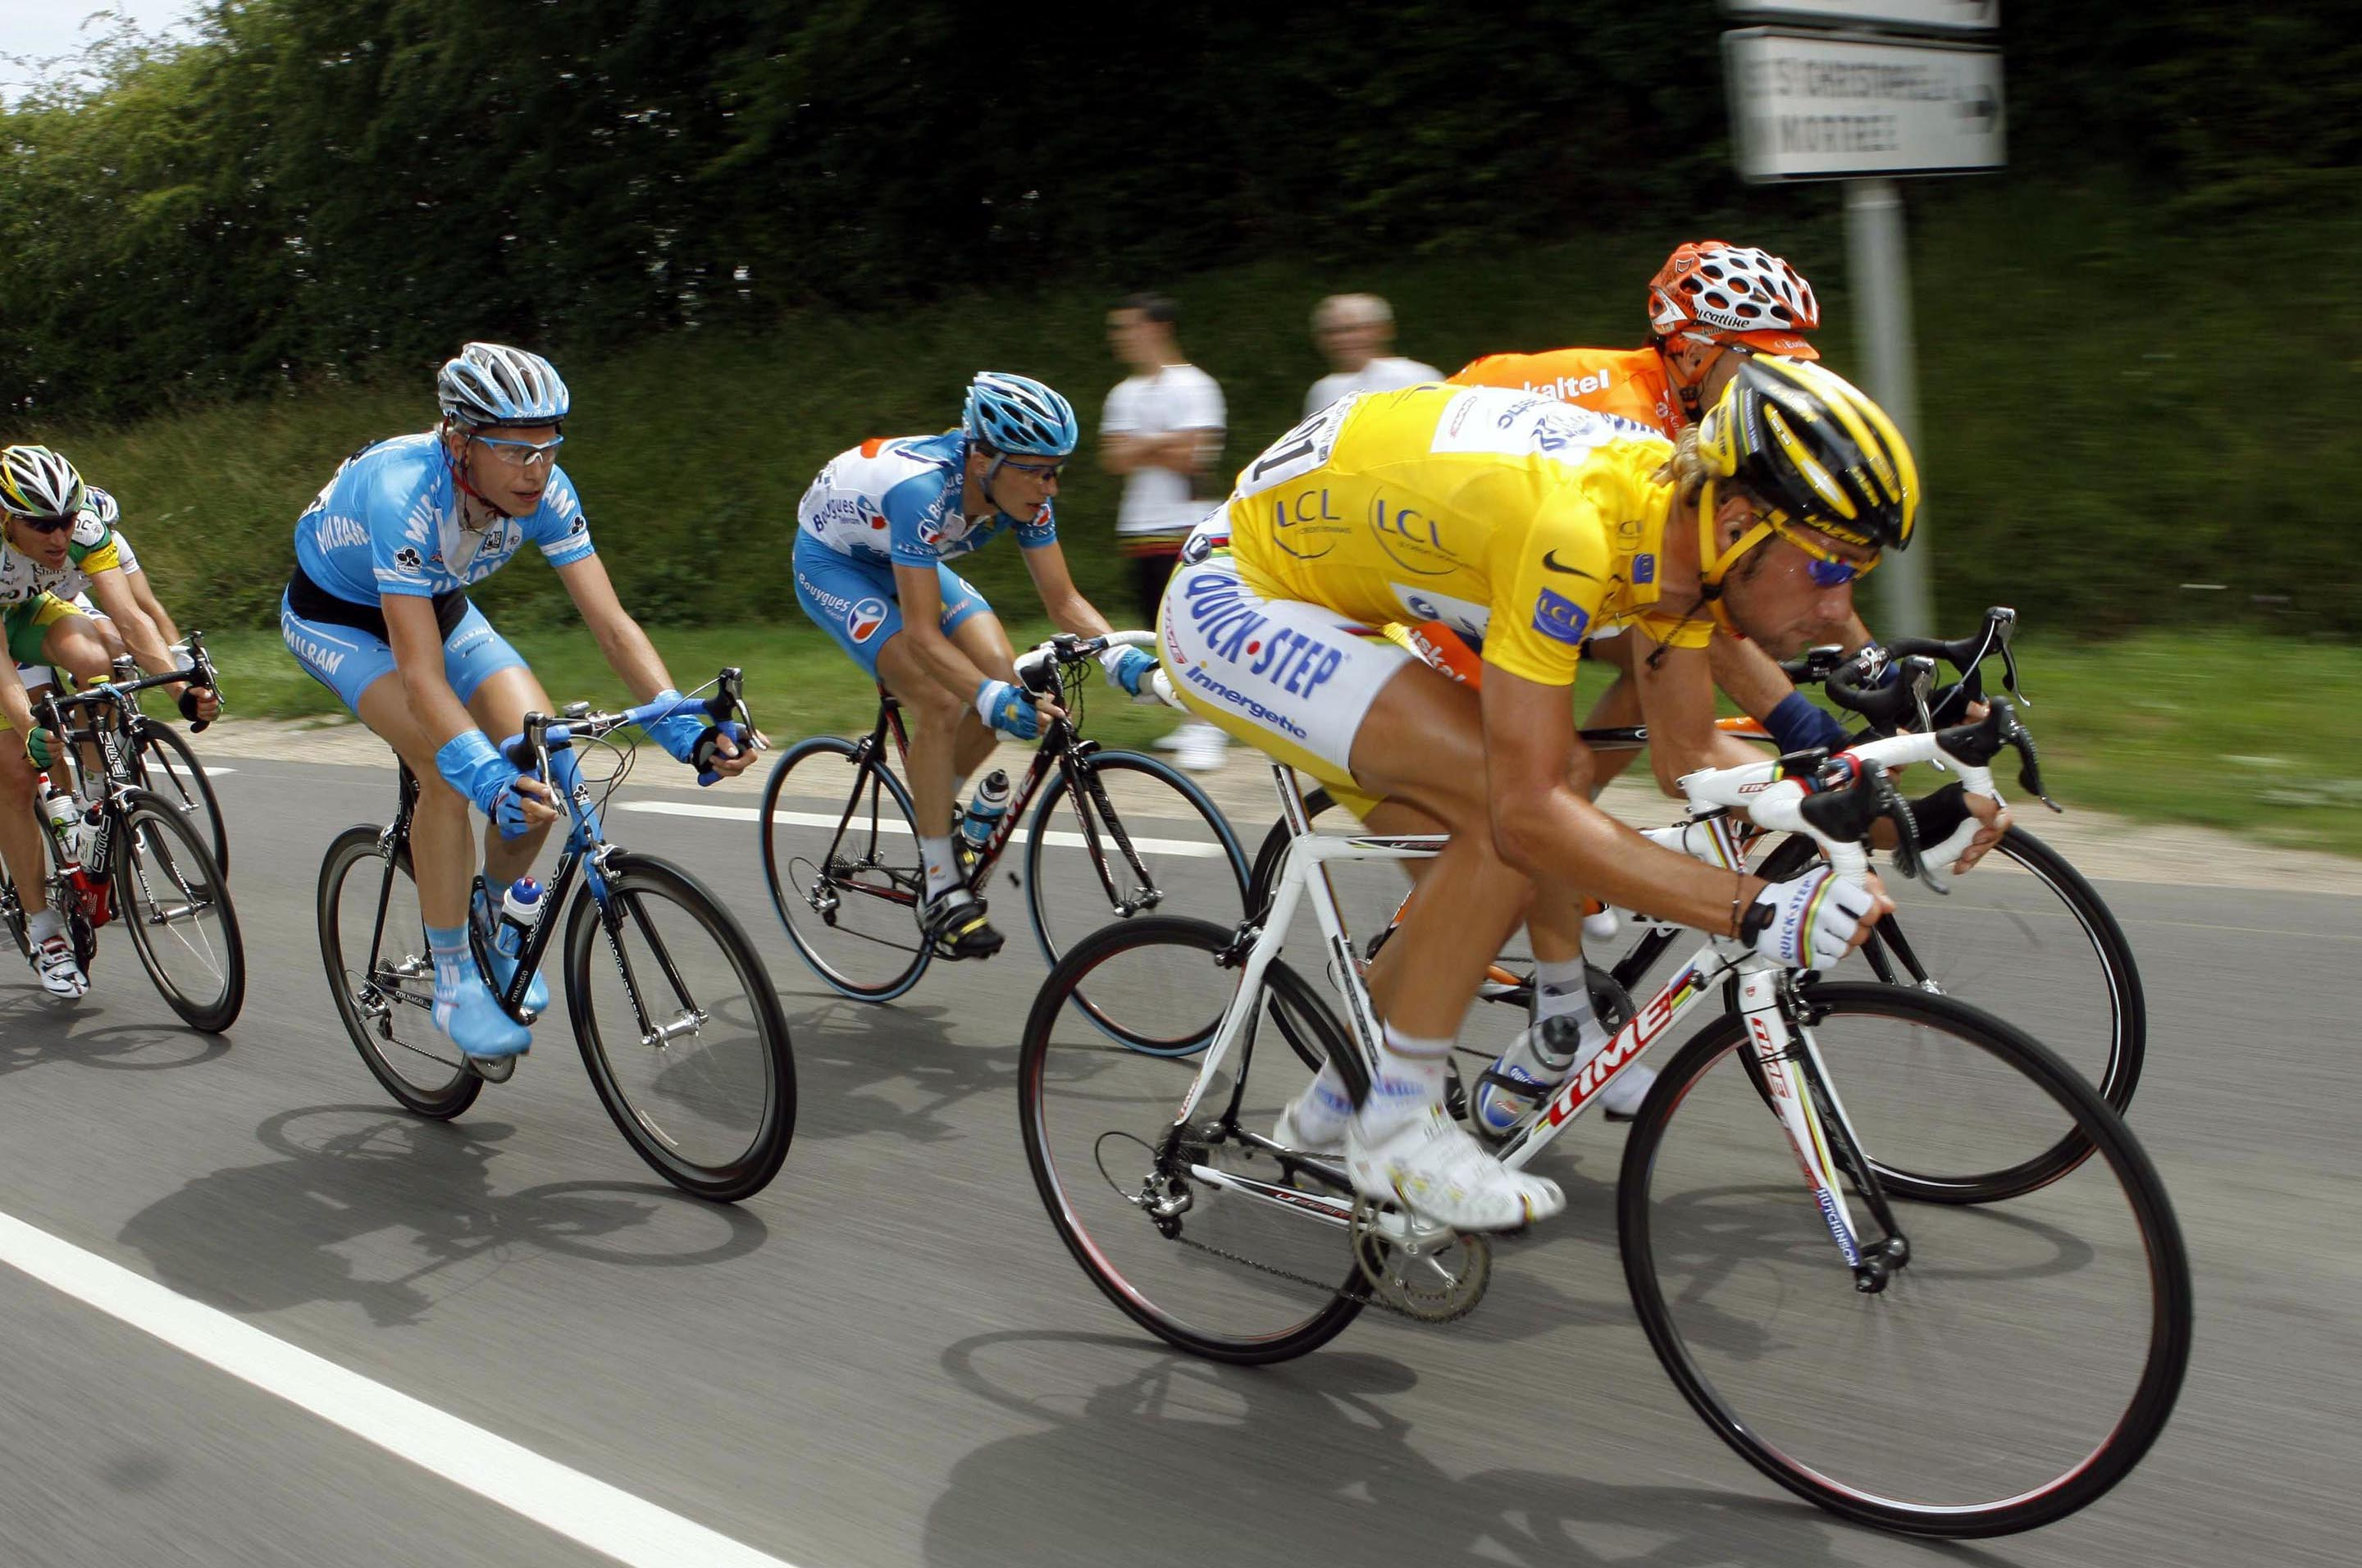 Tom Boonen in the yellow jersey at the 1976 Tour de France